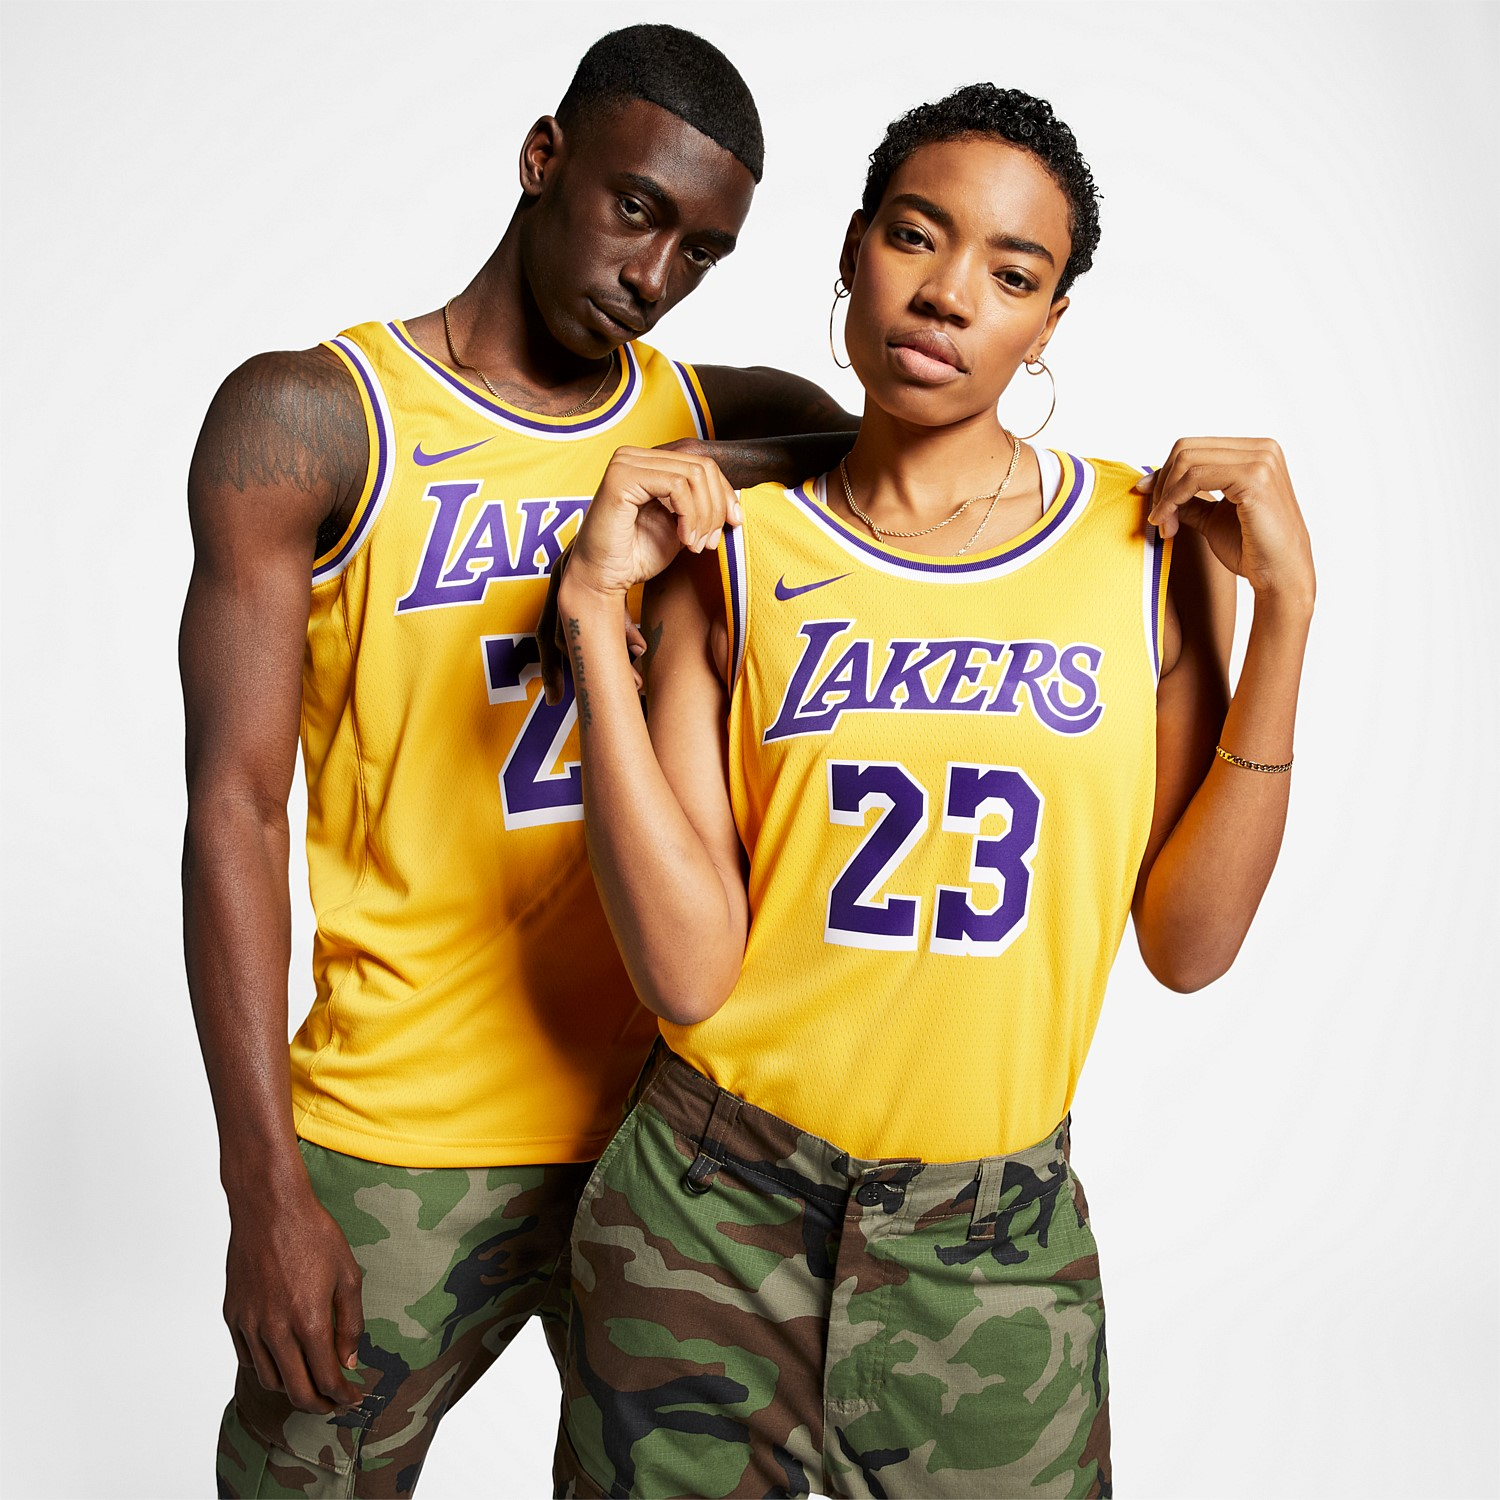 promo code 3405f 4b8d9 Los Angeles Lakers NBA Jersey - James